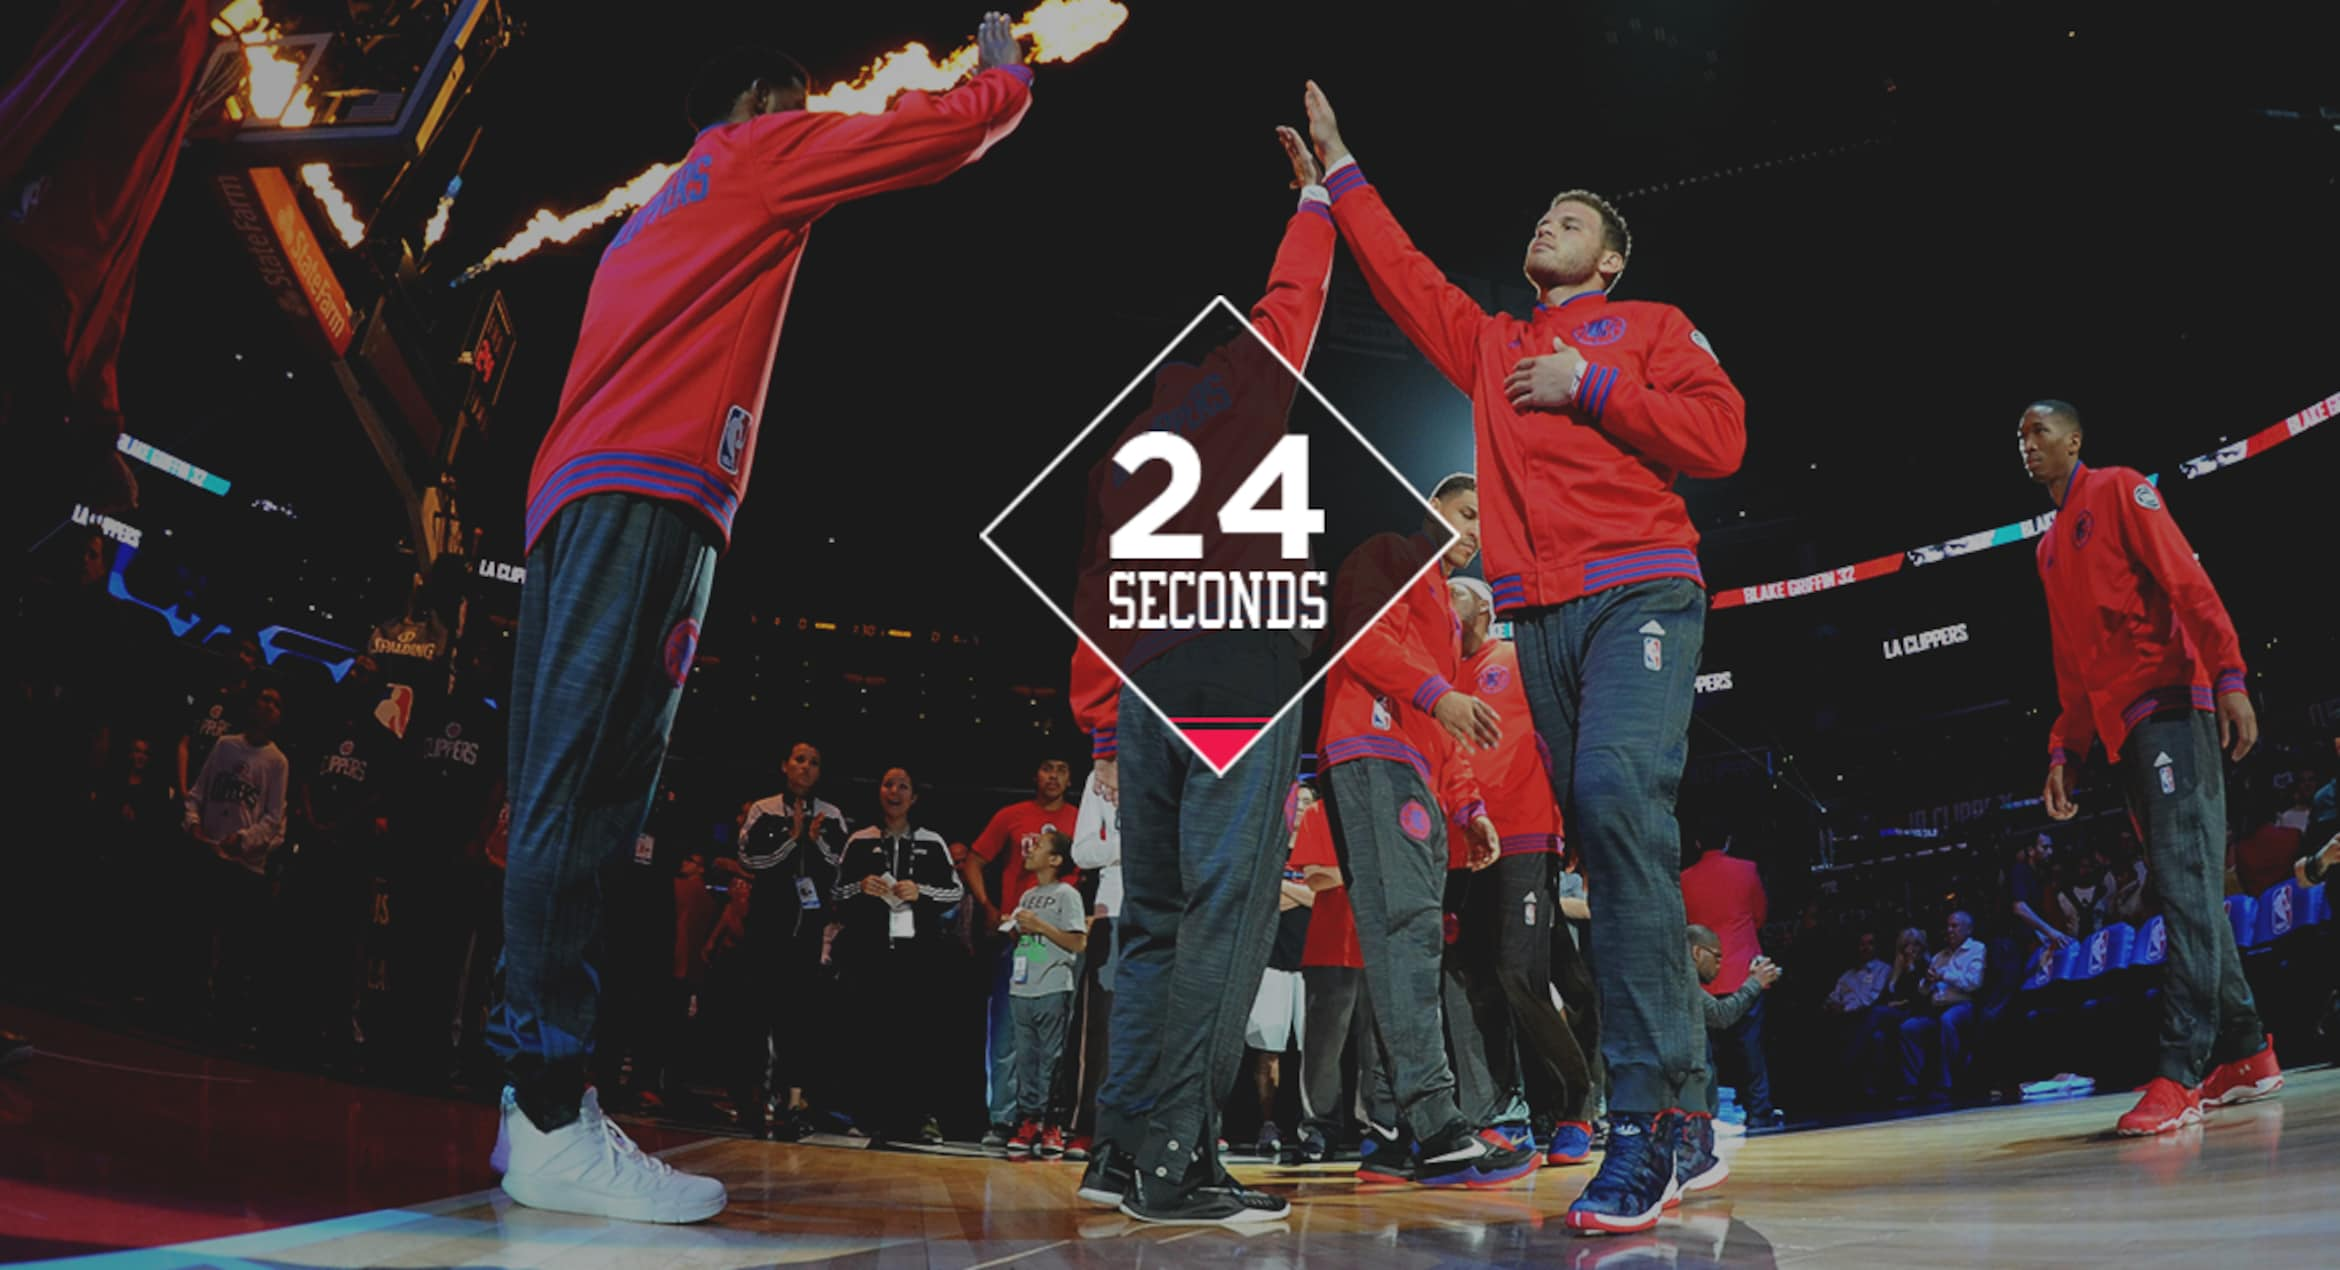 Image of Blake Griffin during pregame player introductions high fiving another player - Article 24 Seconds w/ Blake Griffin